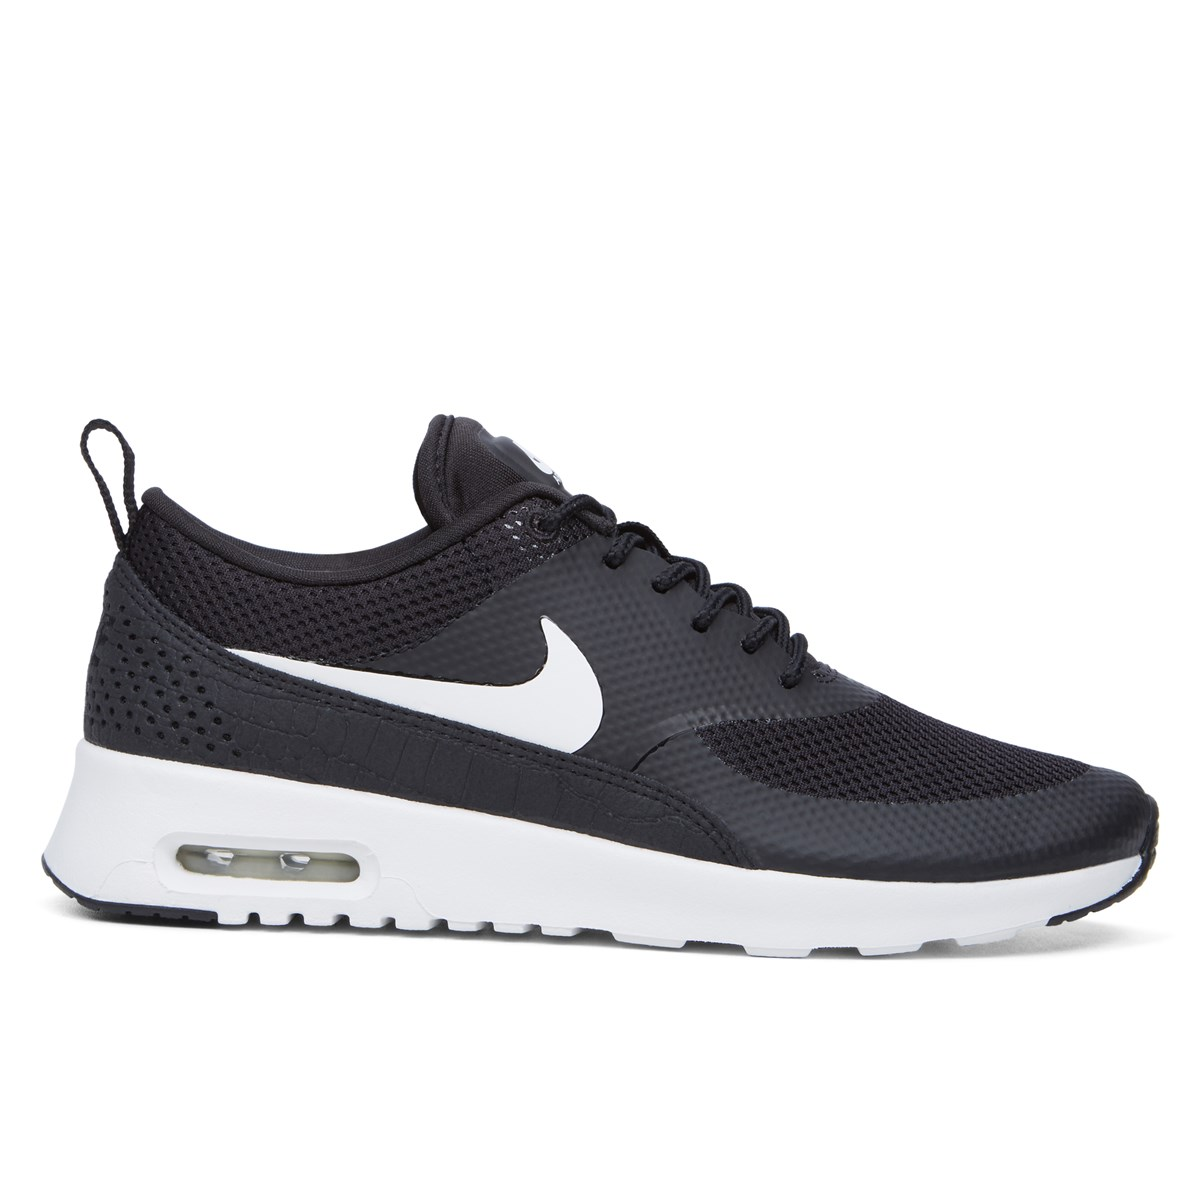 super popular ea0af 0e5a7 Women s Air Max Thea Black Sneaker. Previous. default view  ALT1  ALT2. 123